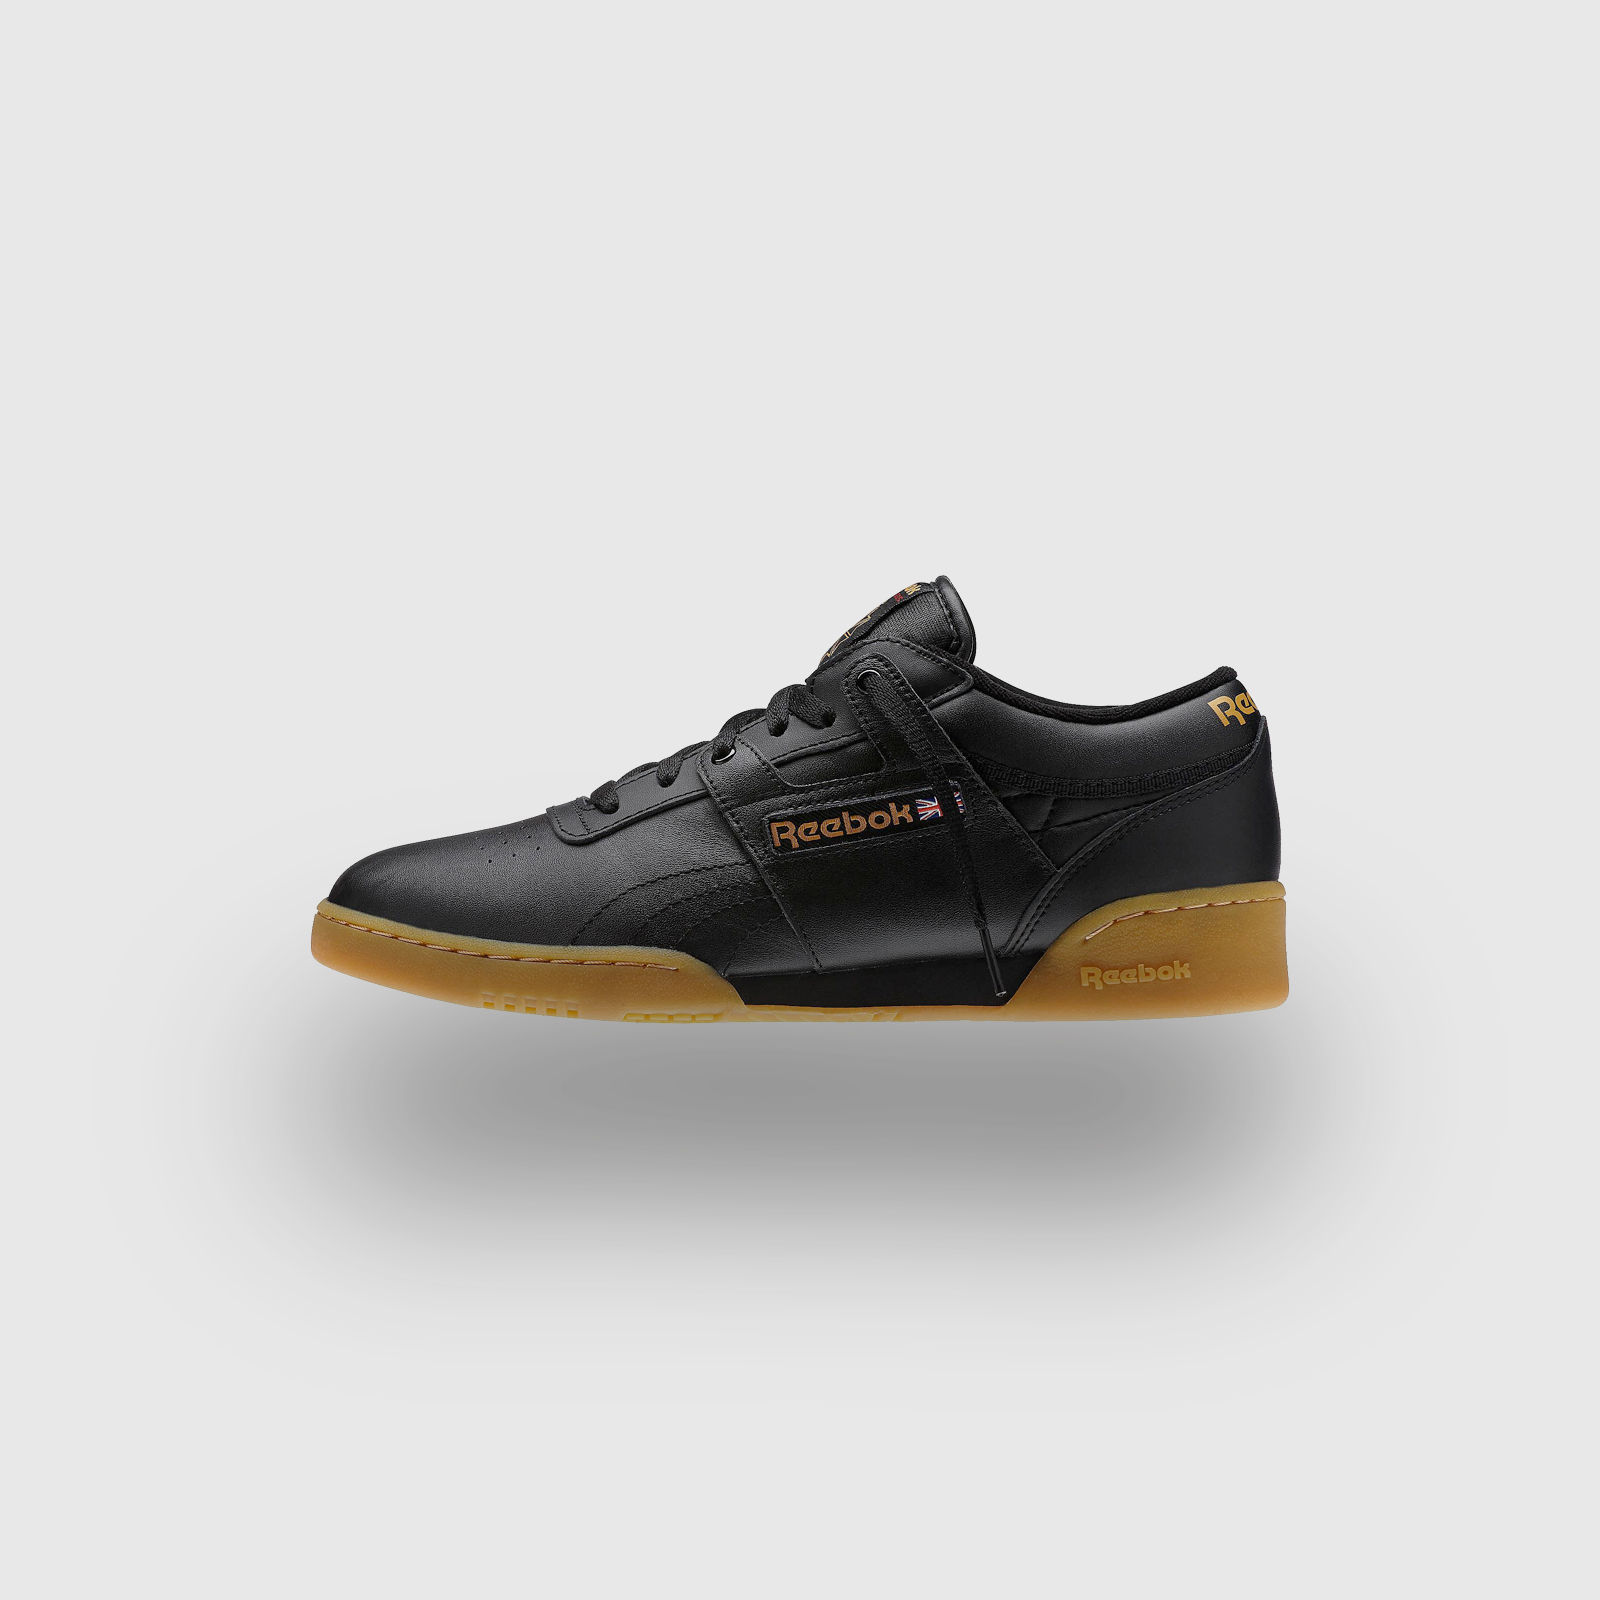 3a7fdaa36698a Reebok Workout Low - 67107 - Sneakersnstuff